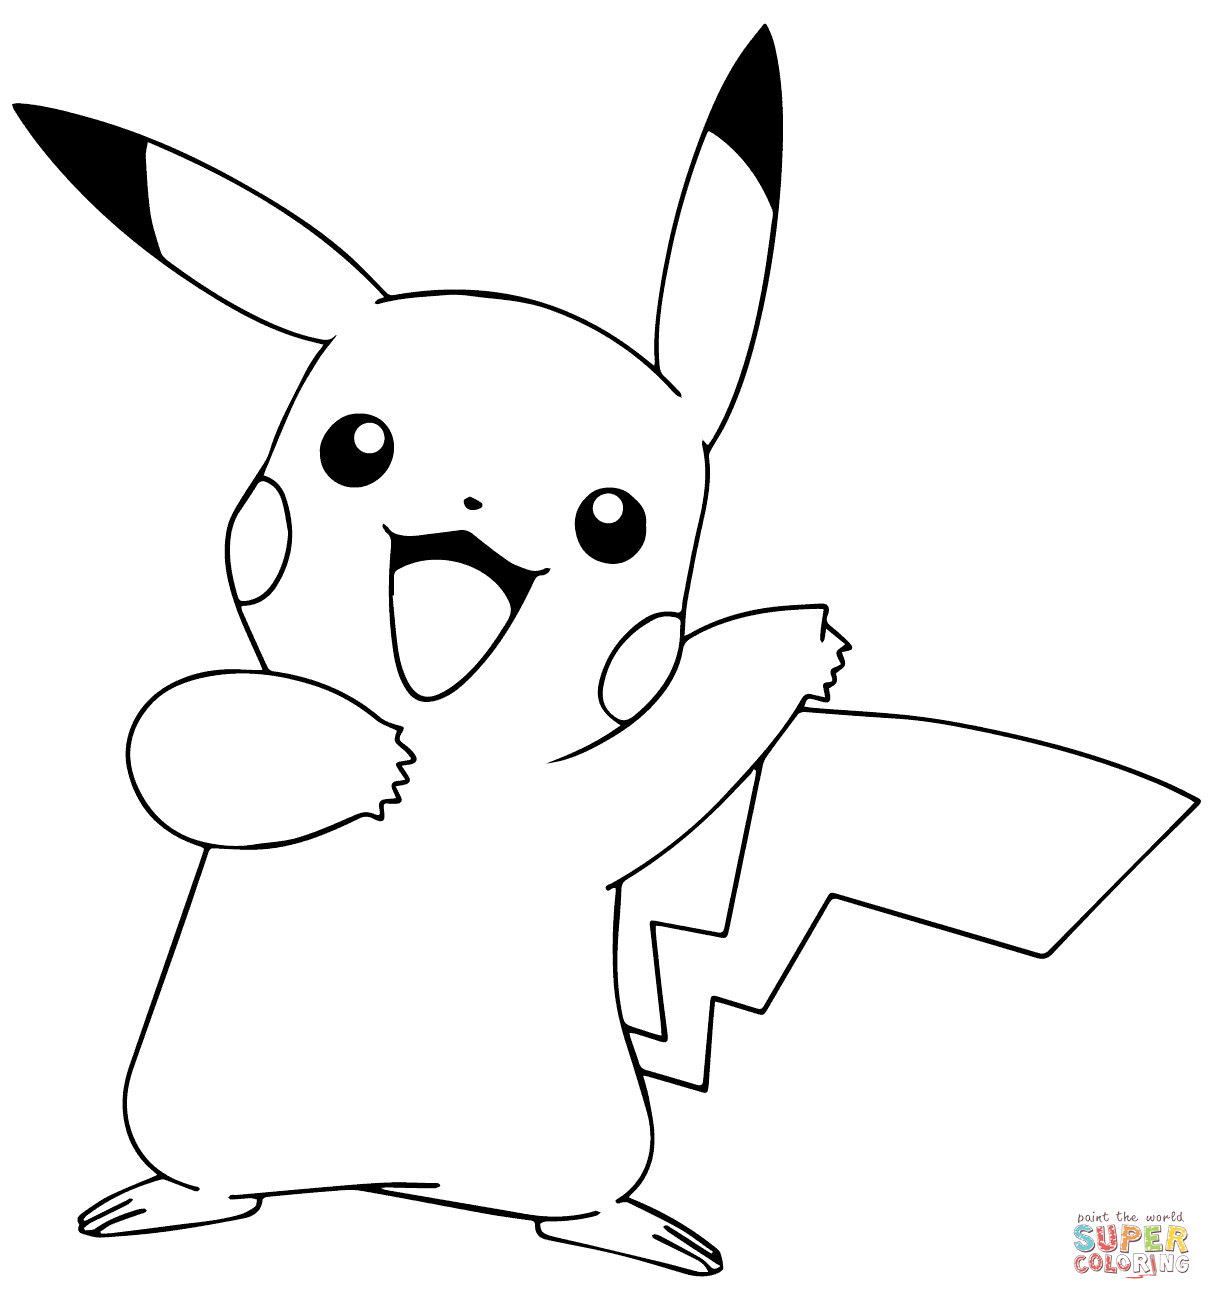 pikachu sketch requested drawing pikachu updated by greyamoon on sketch pikachu